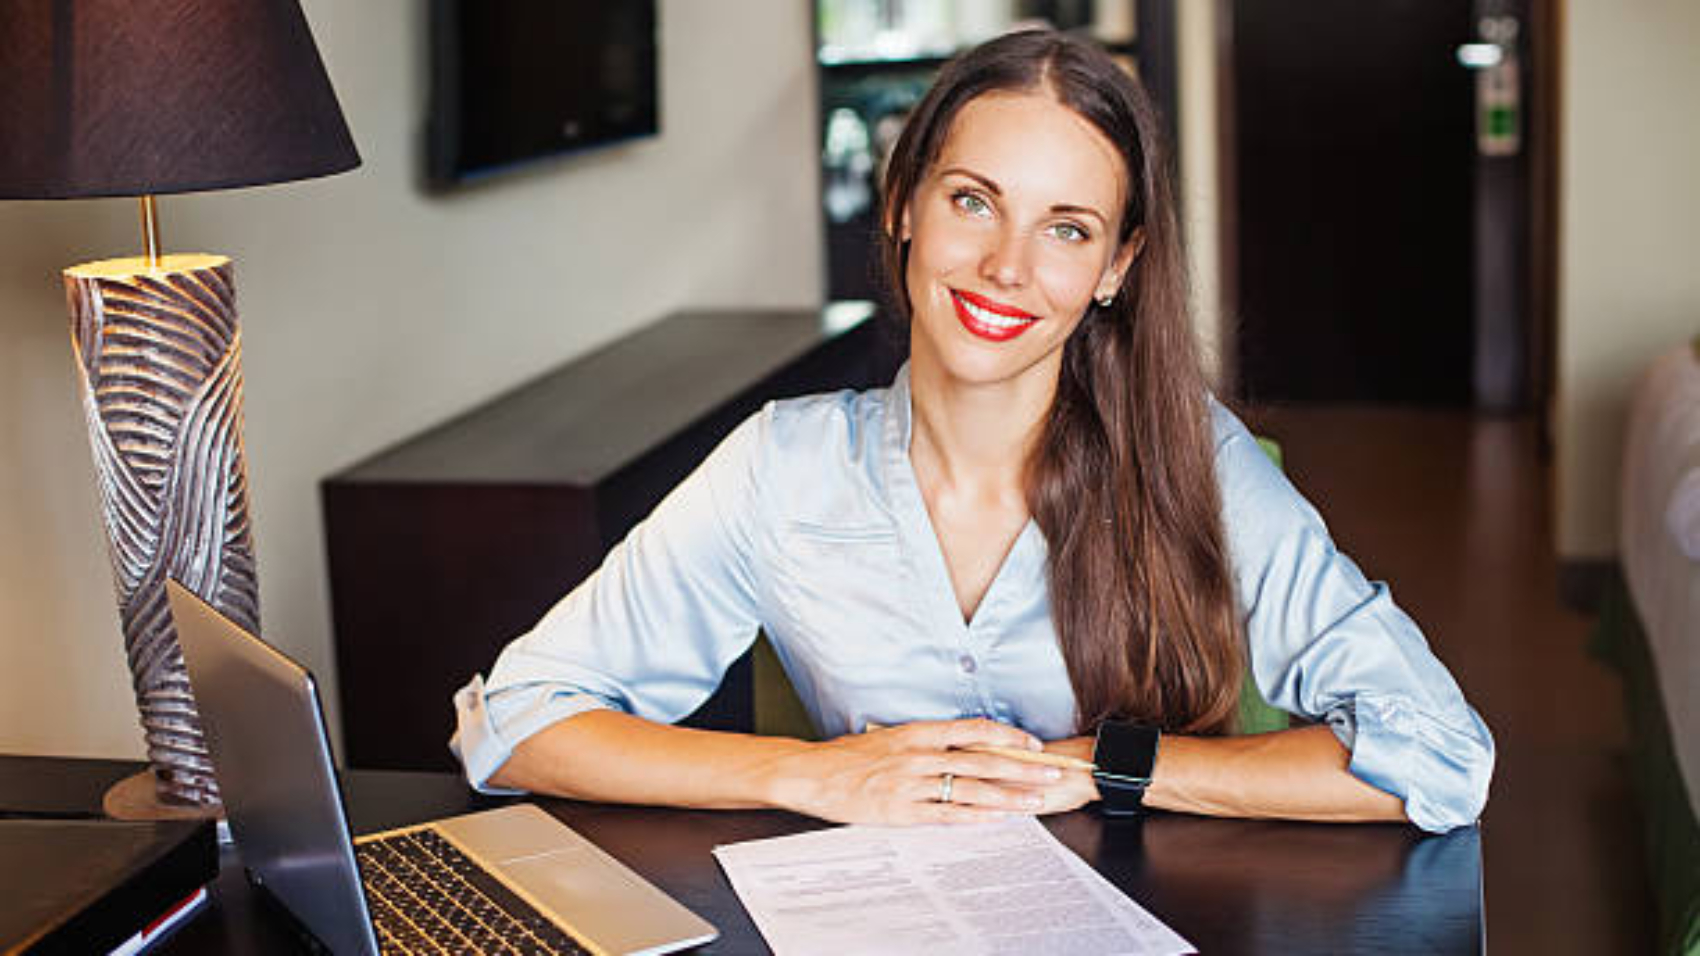 Beautiful business woman in casual dress sitting at a table with laptop looking at camera and smiling